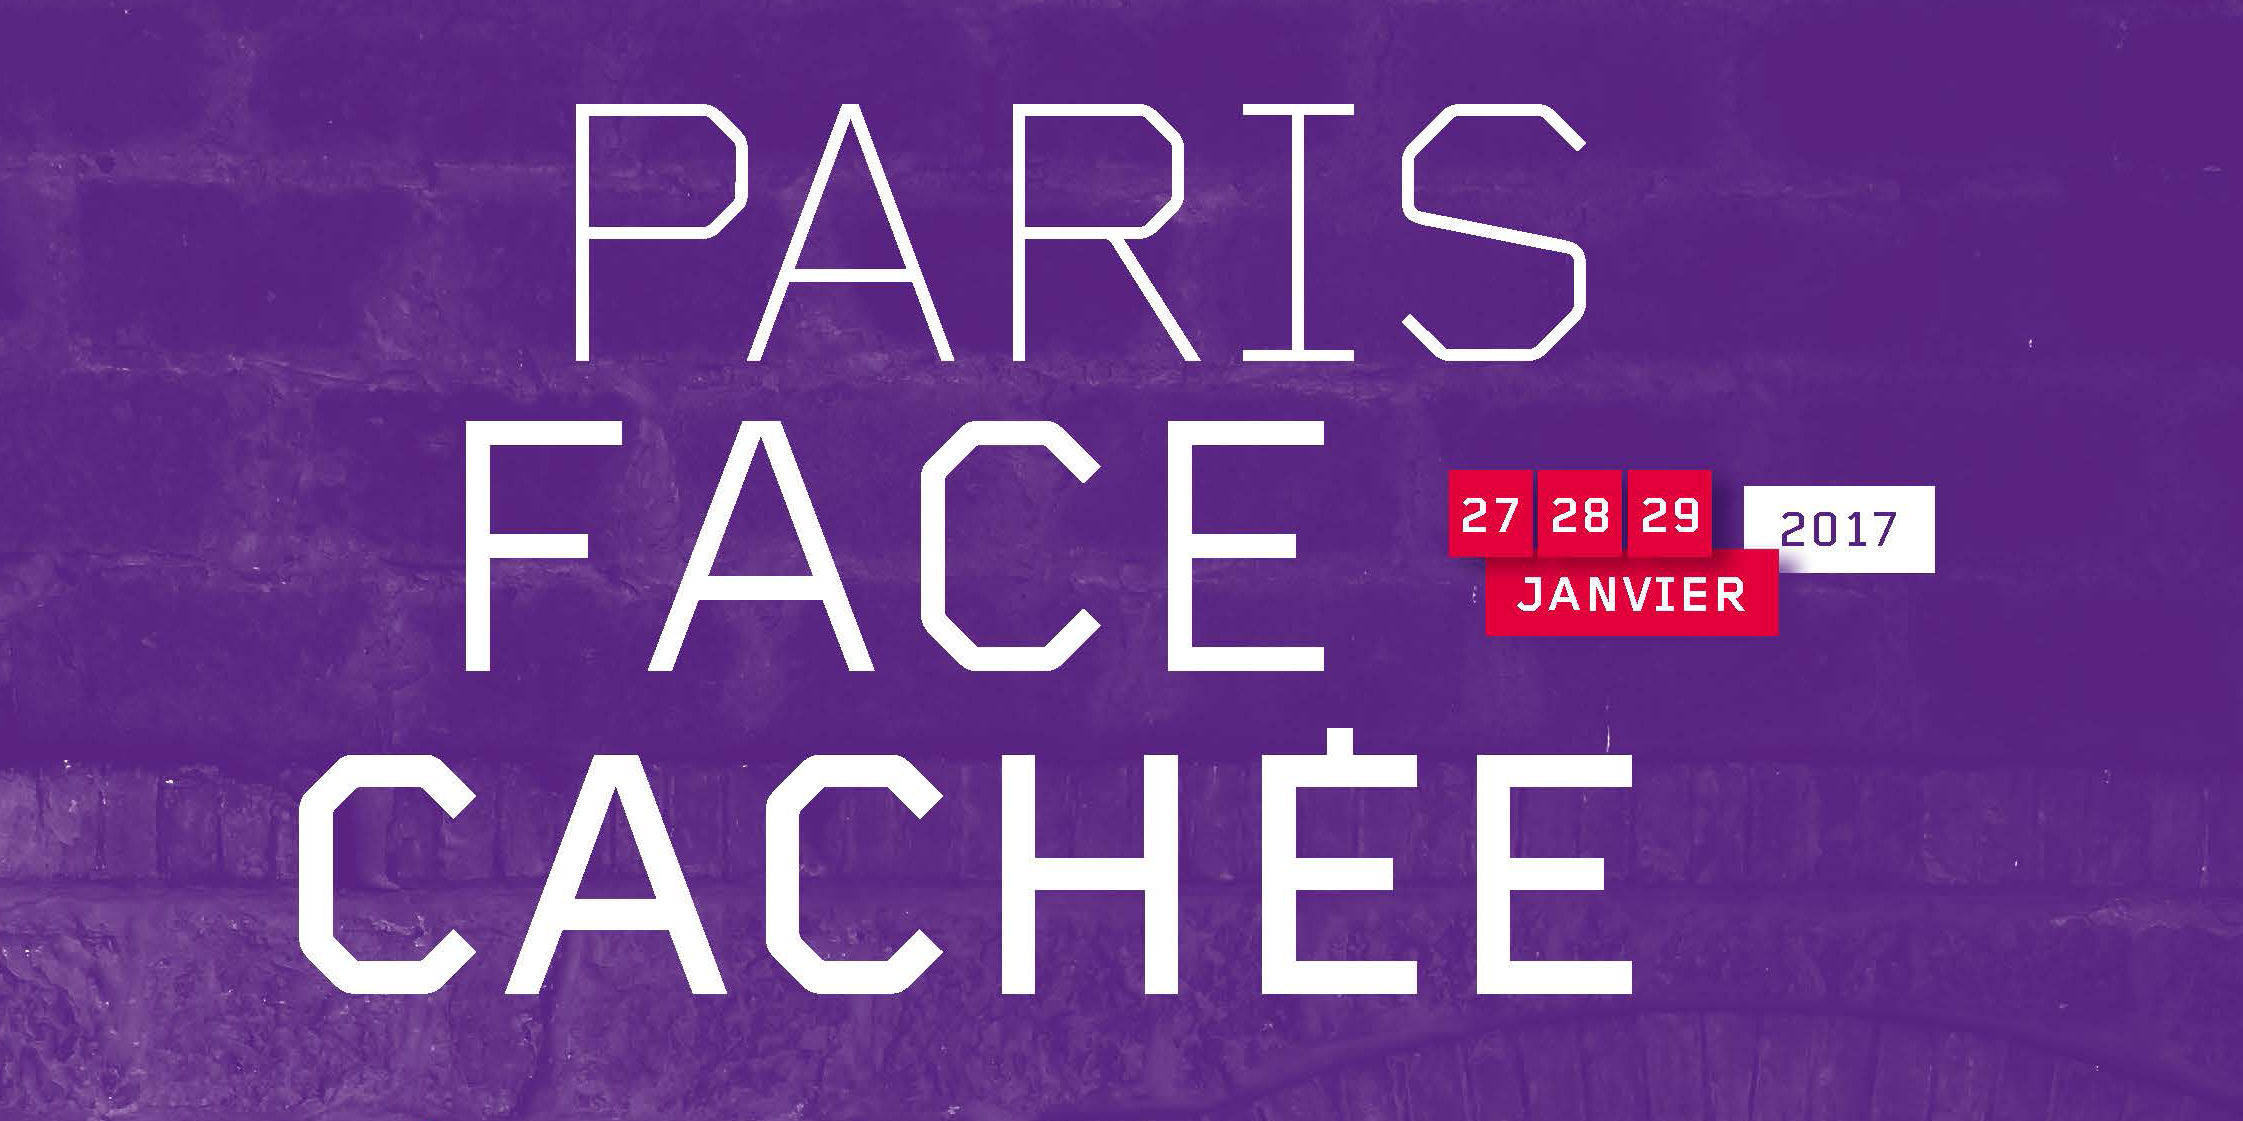 Paris Face Cachée 2017